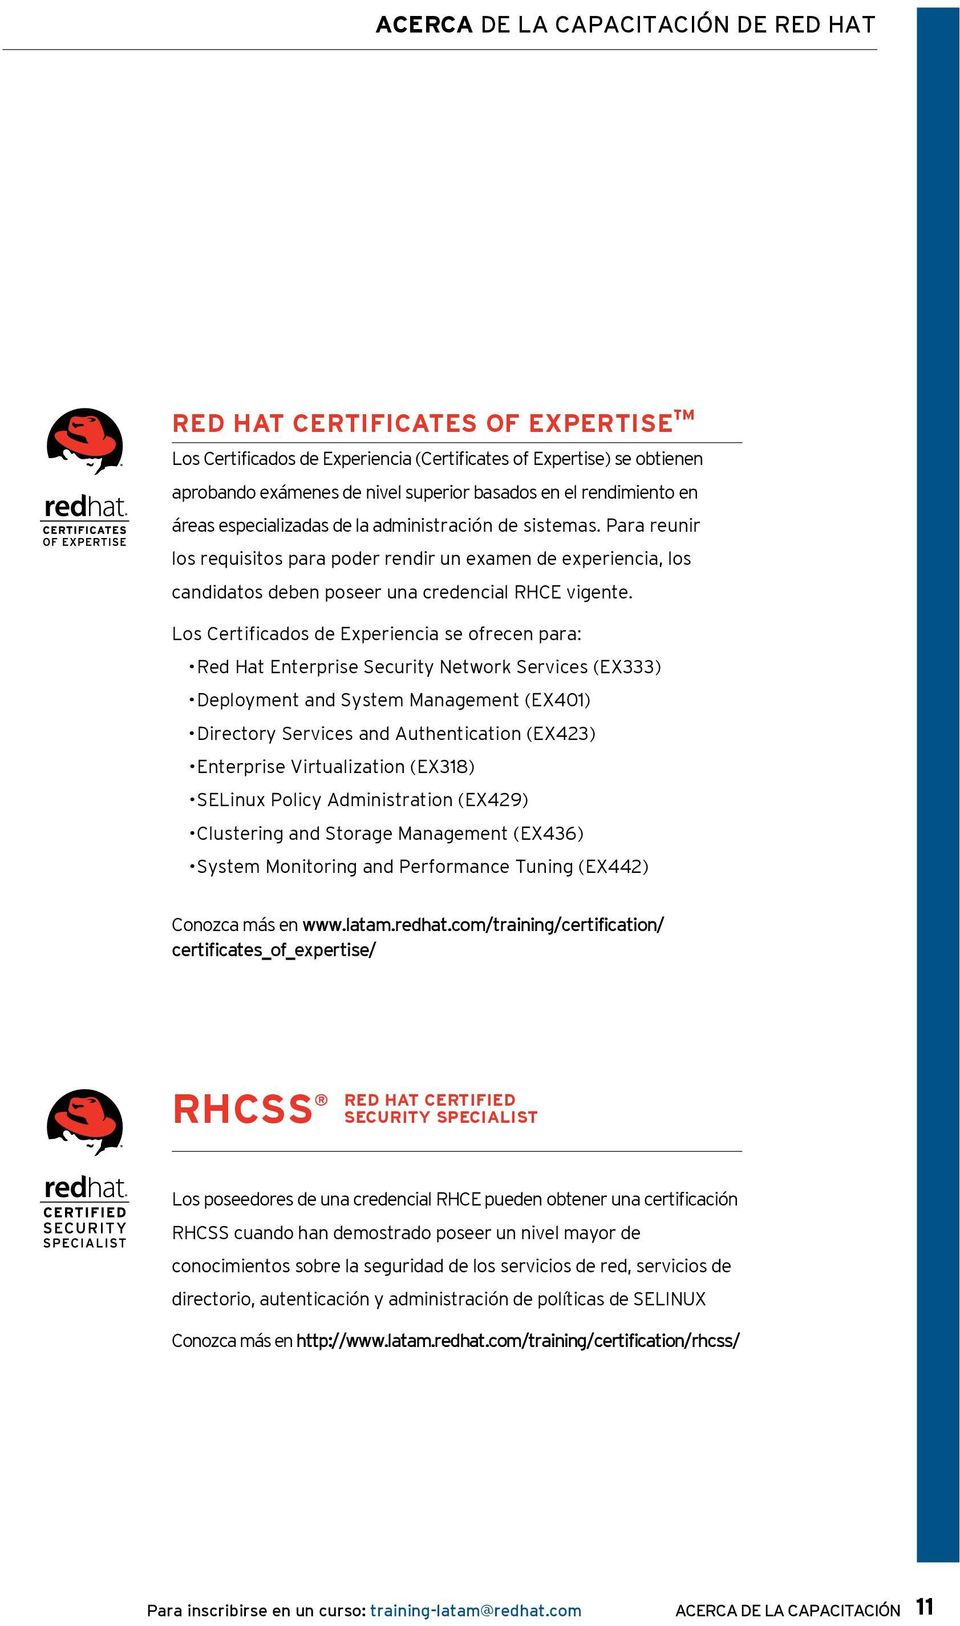 Los Certificados de Experiencia se ofrecen para: Red Hat Enterprise Security Network Services (EX333) Deployment and System Management (EX401) Directory Services and Authentication (EX423) Enterprise